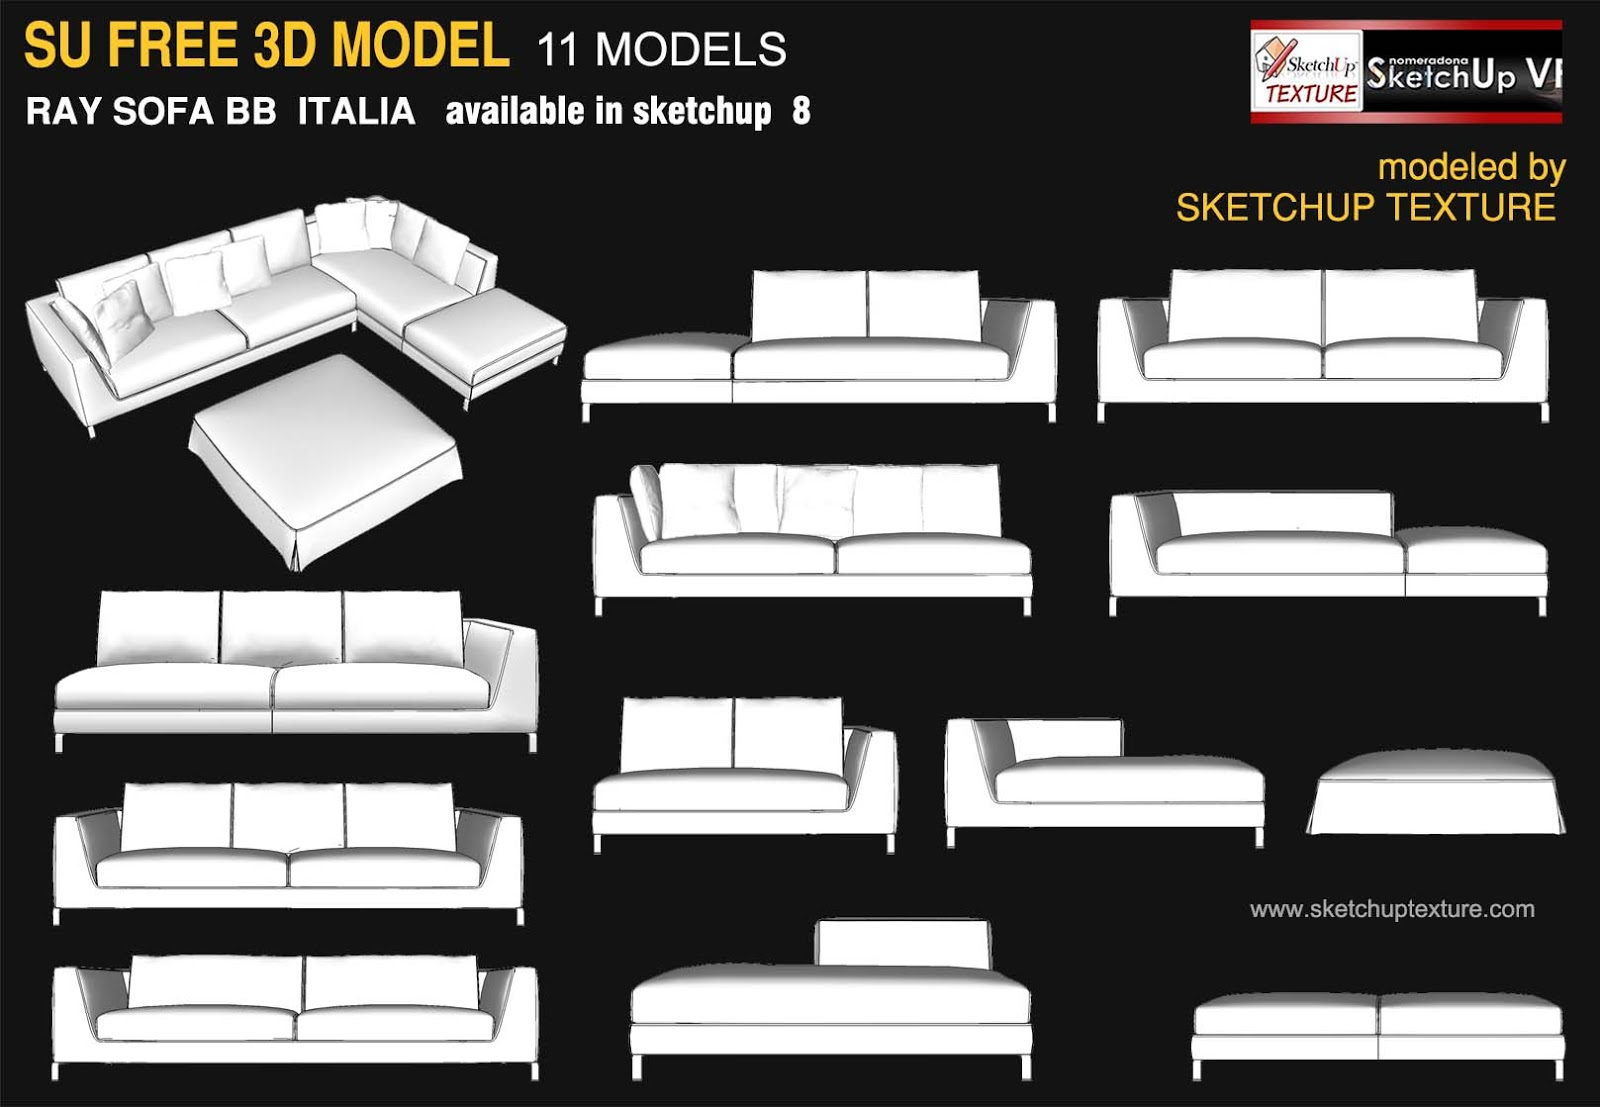 Aluminium Sliding Door Sliding Doors Model Sketchup Aluminum 3d Model - Free sketchup 3d model ray sofa bb italia modules by skethuptexture com